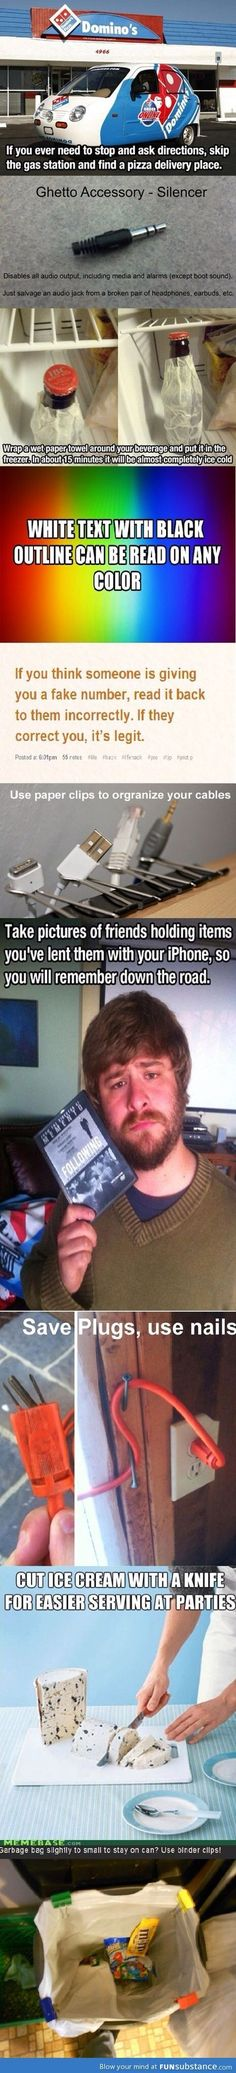 Life hacks- That photo of a friend borrowing your stuff is a good idea. I always forget! lol